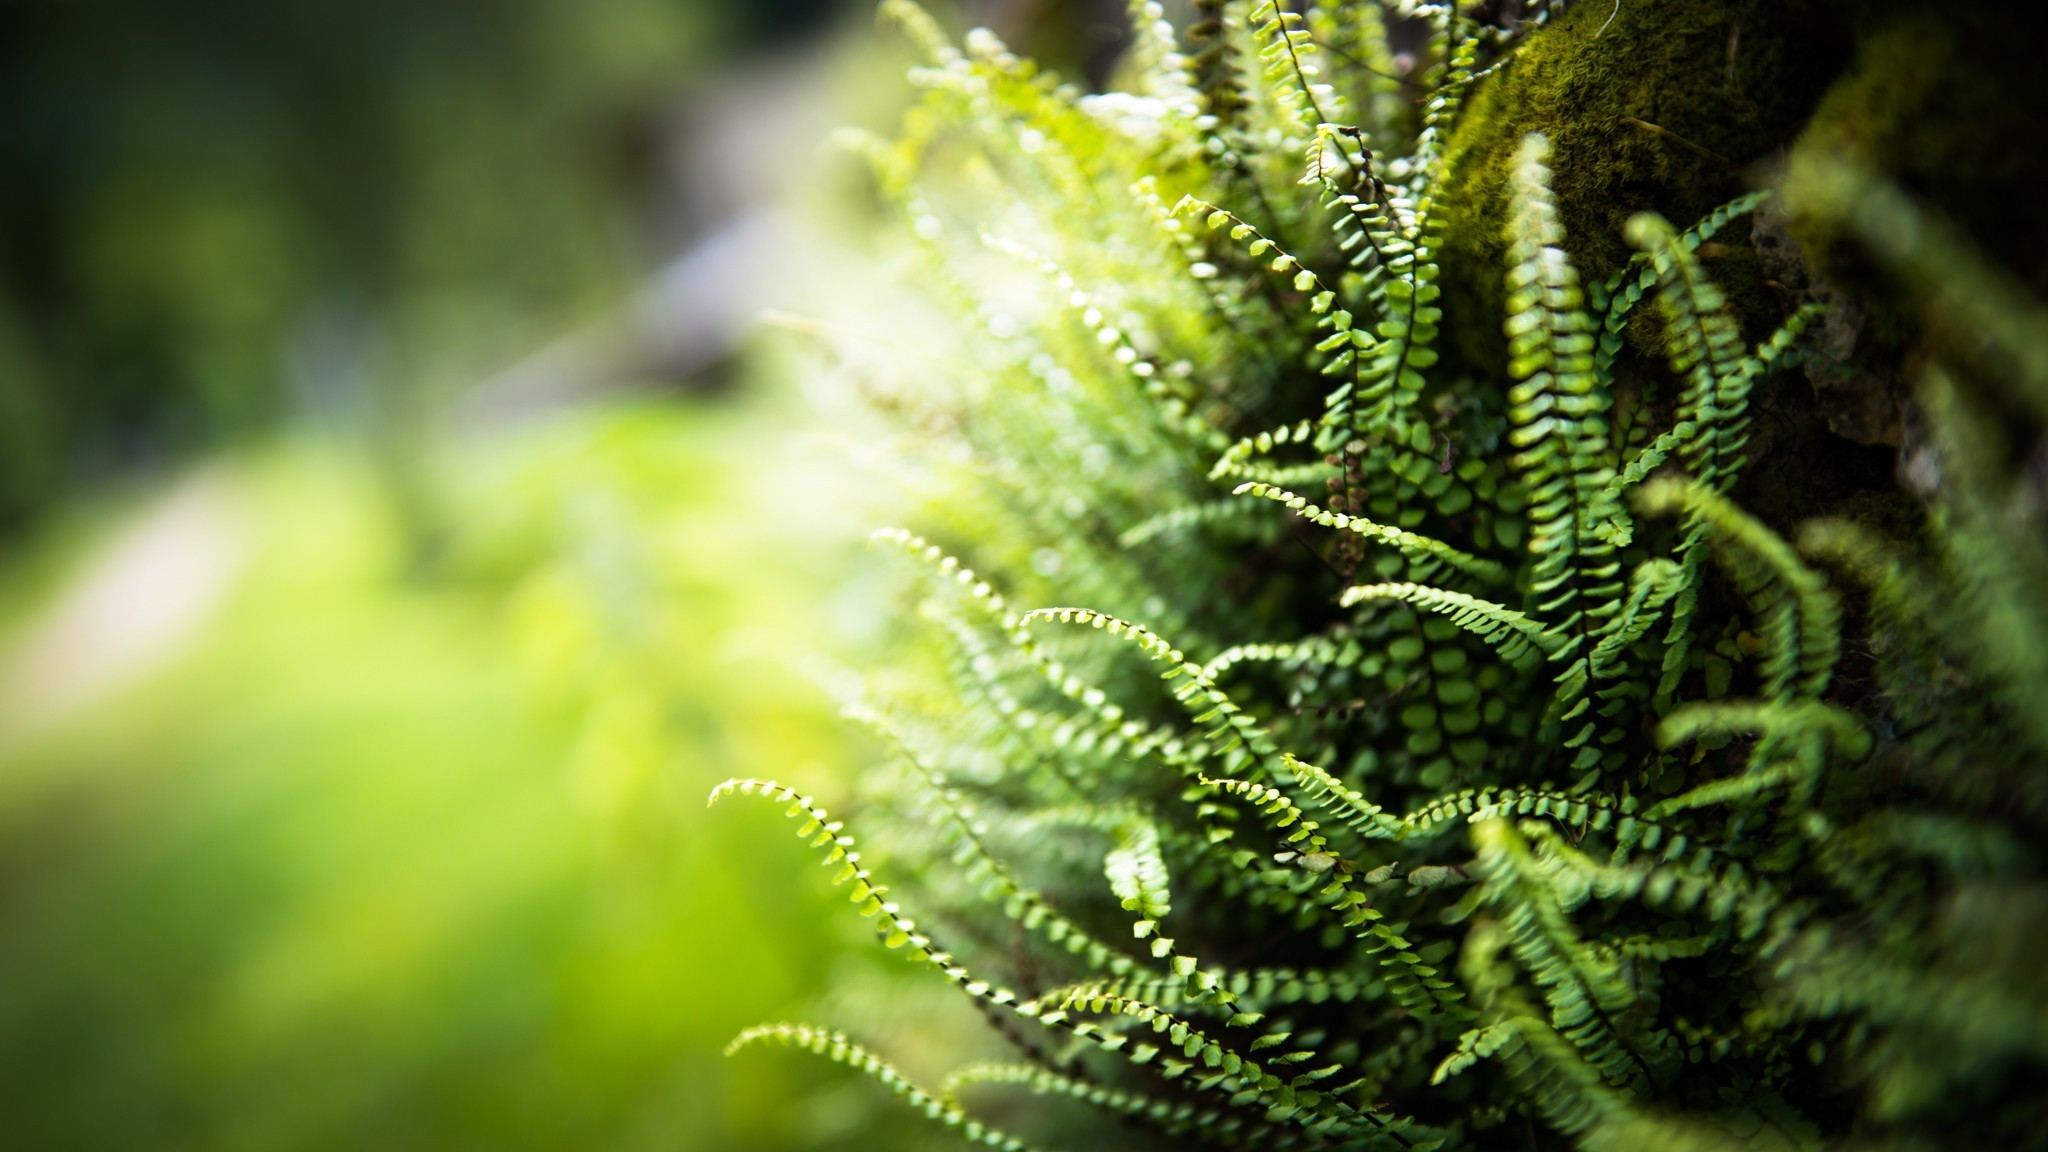 Jungle Animal Wallpaper Nature Ferns Blurred Depth Of Field Plants Wallpapers